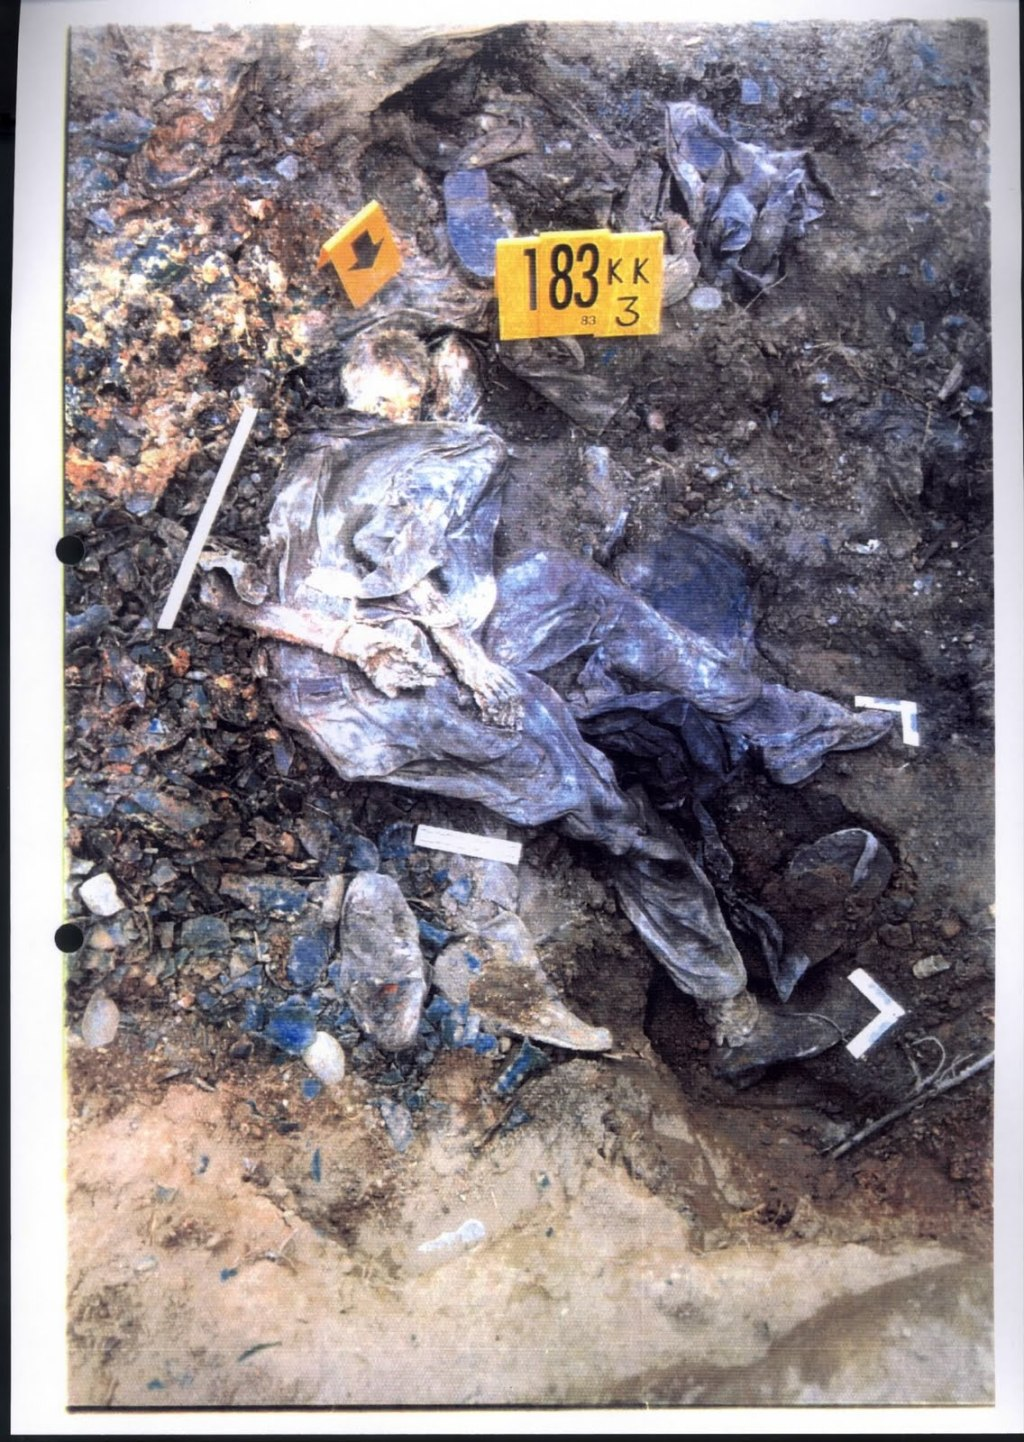 Exhibit P128-24 from Krstic trial - Srebrenica victims had their hands tied before executions - A full view of one victim who was systematically executed and dumped into mass graves